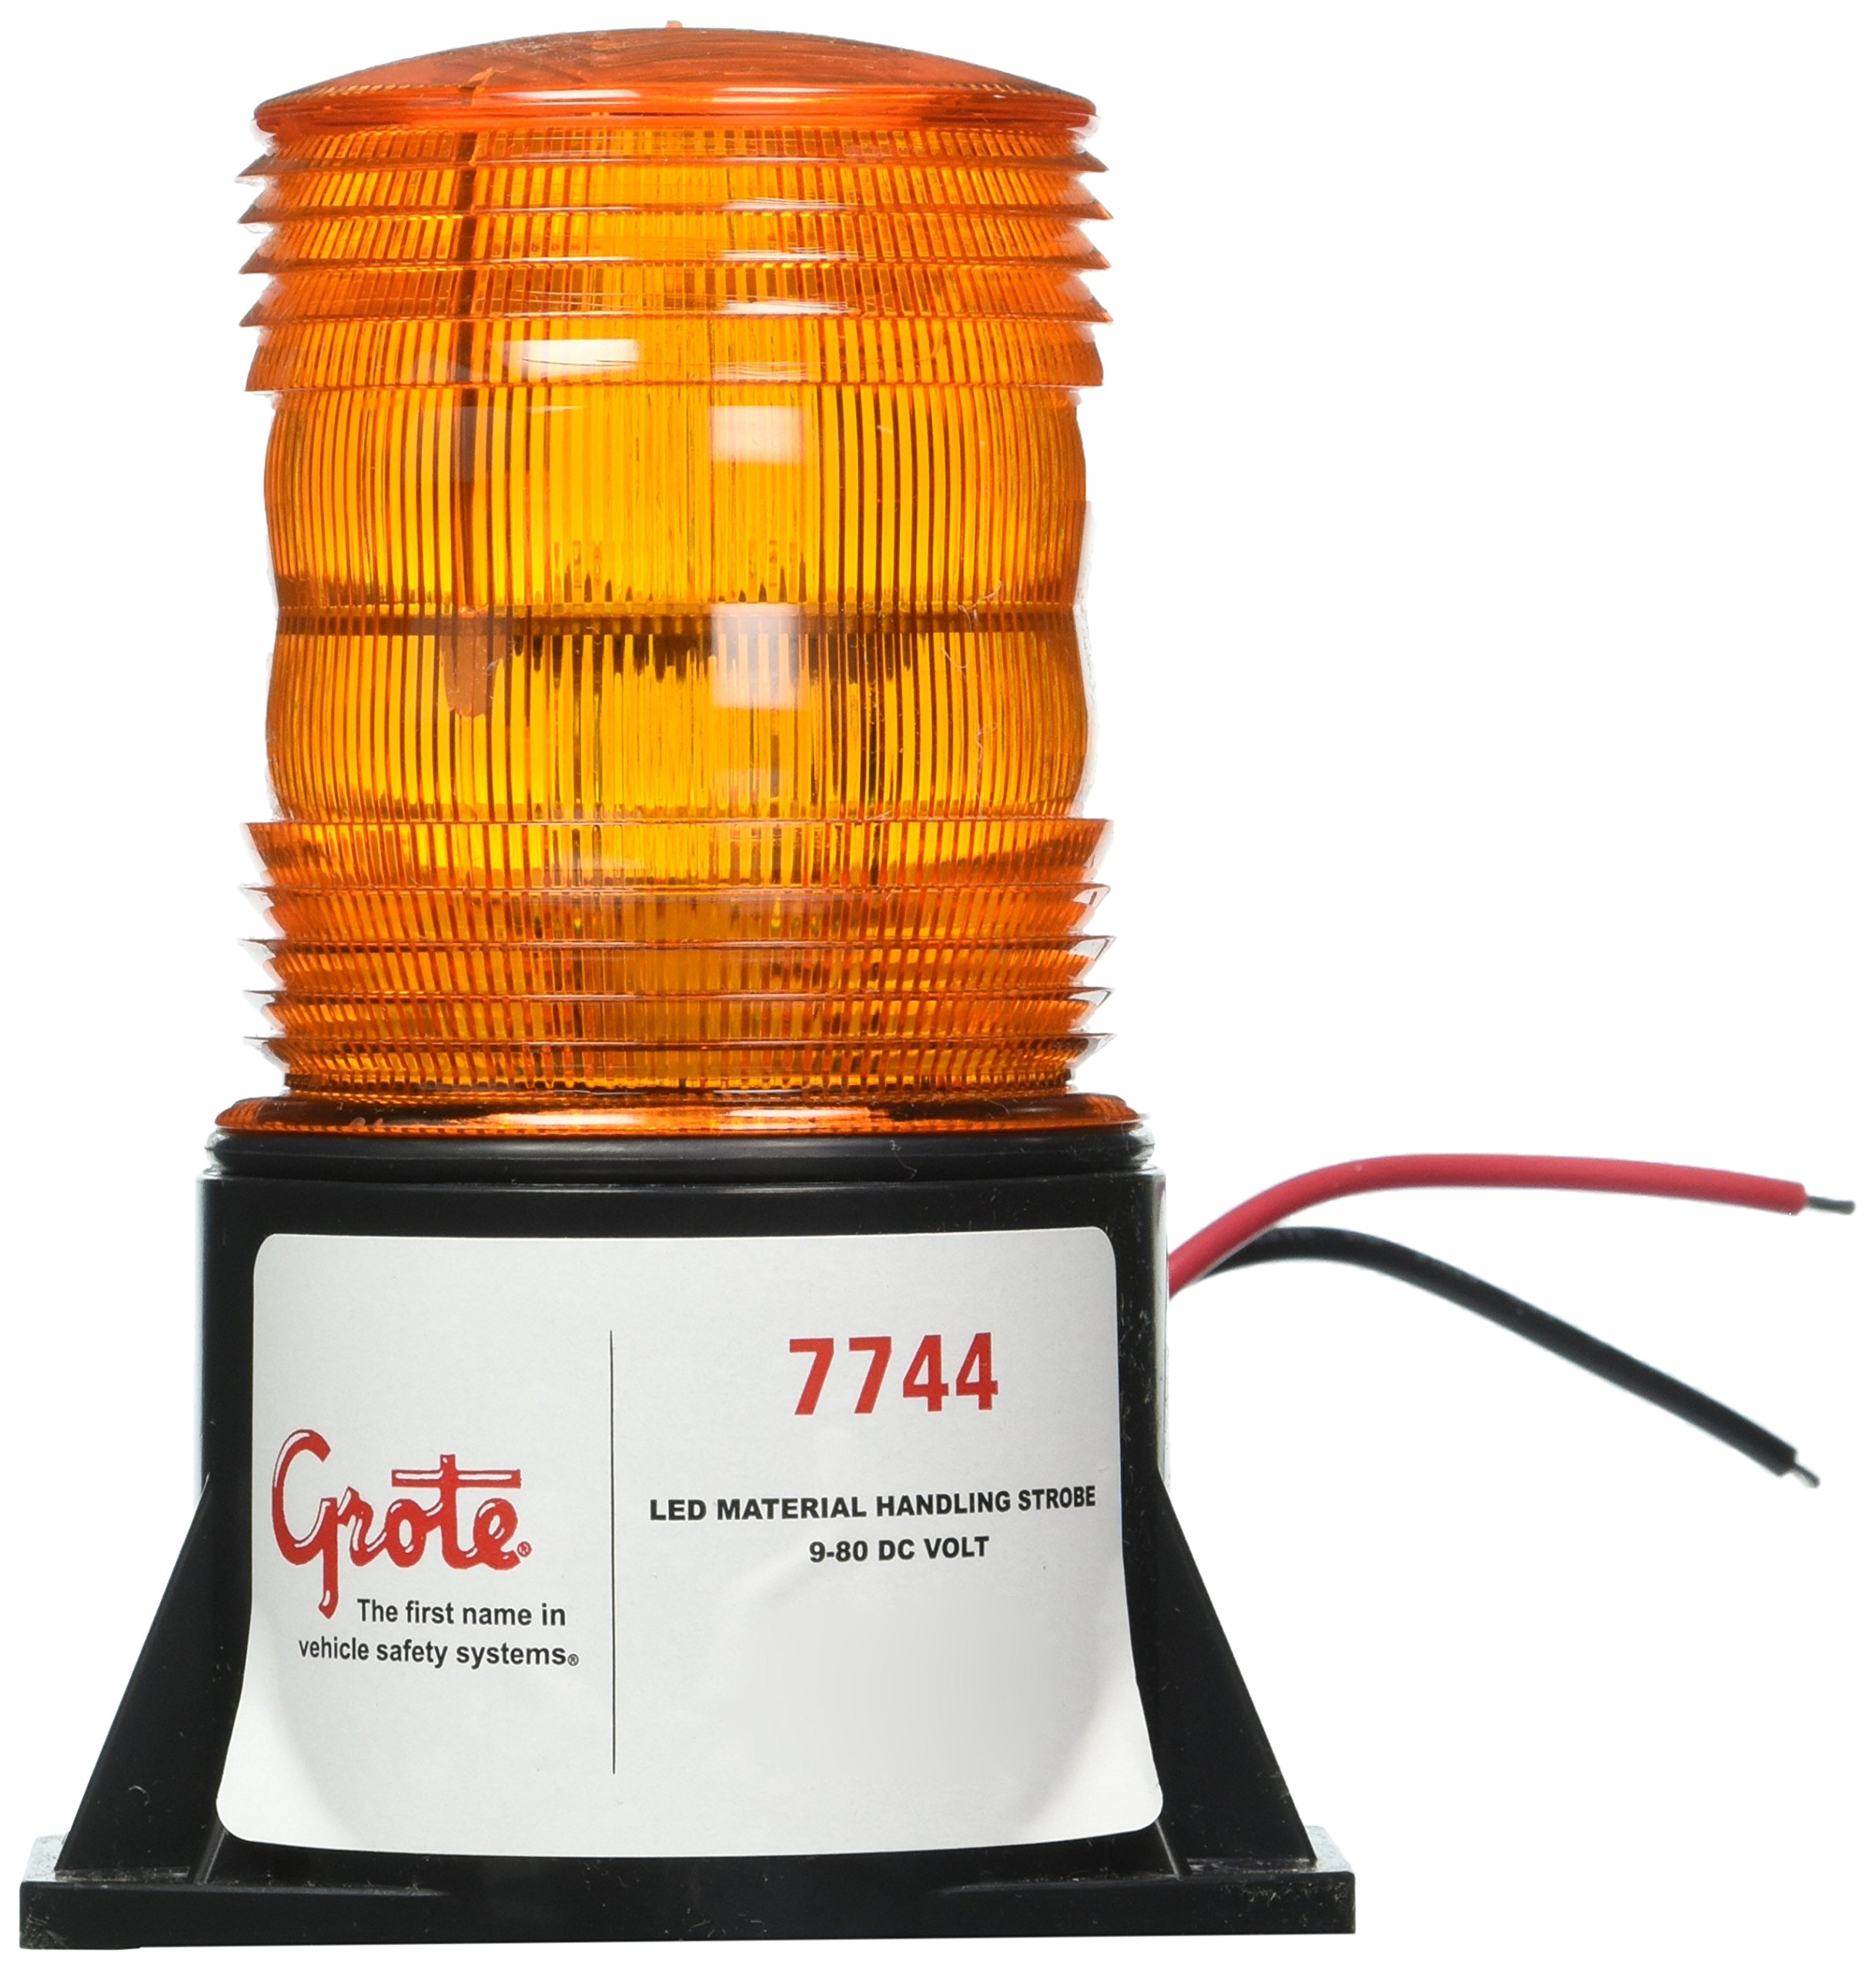 Grote 77443 Yellow LED Material Handling Strobe